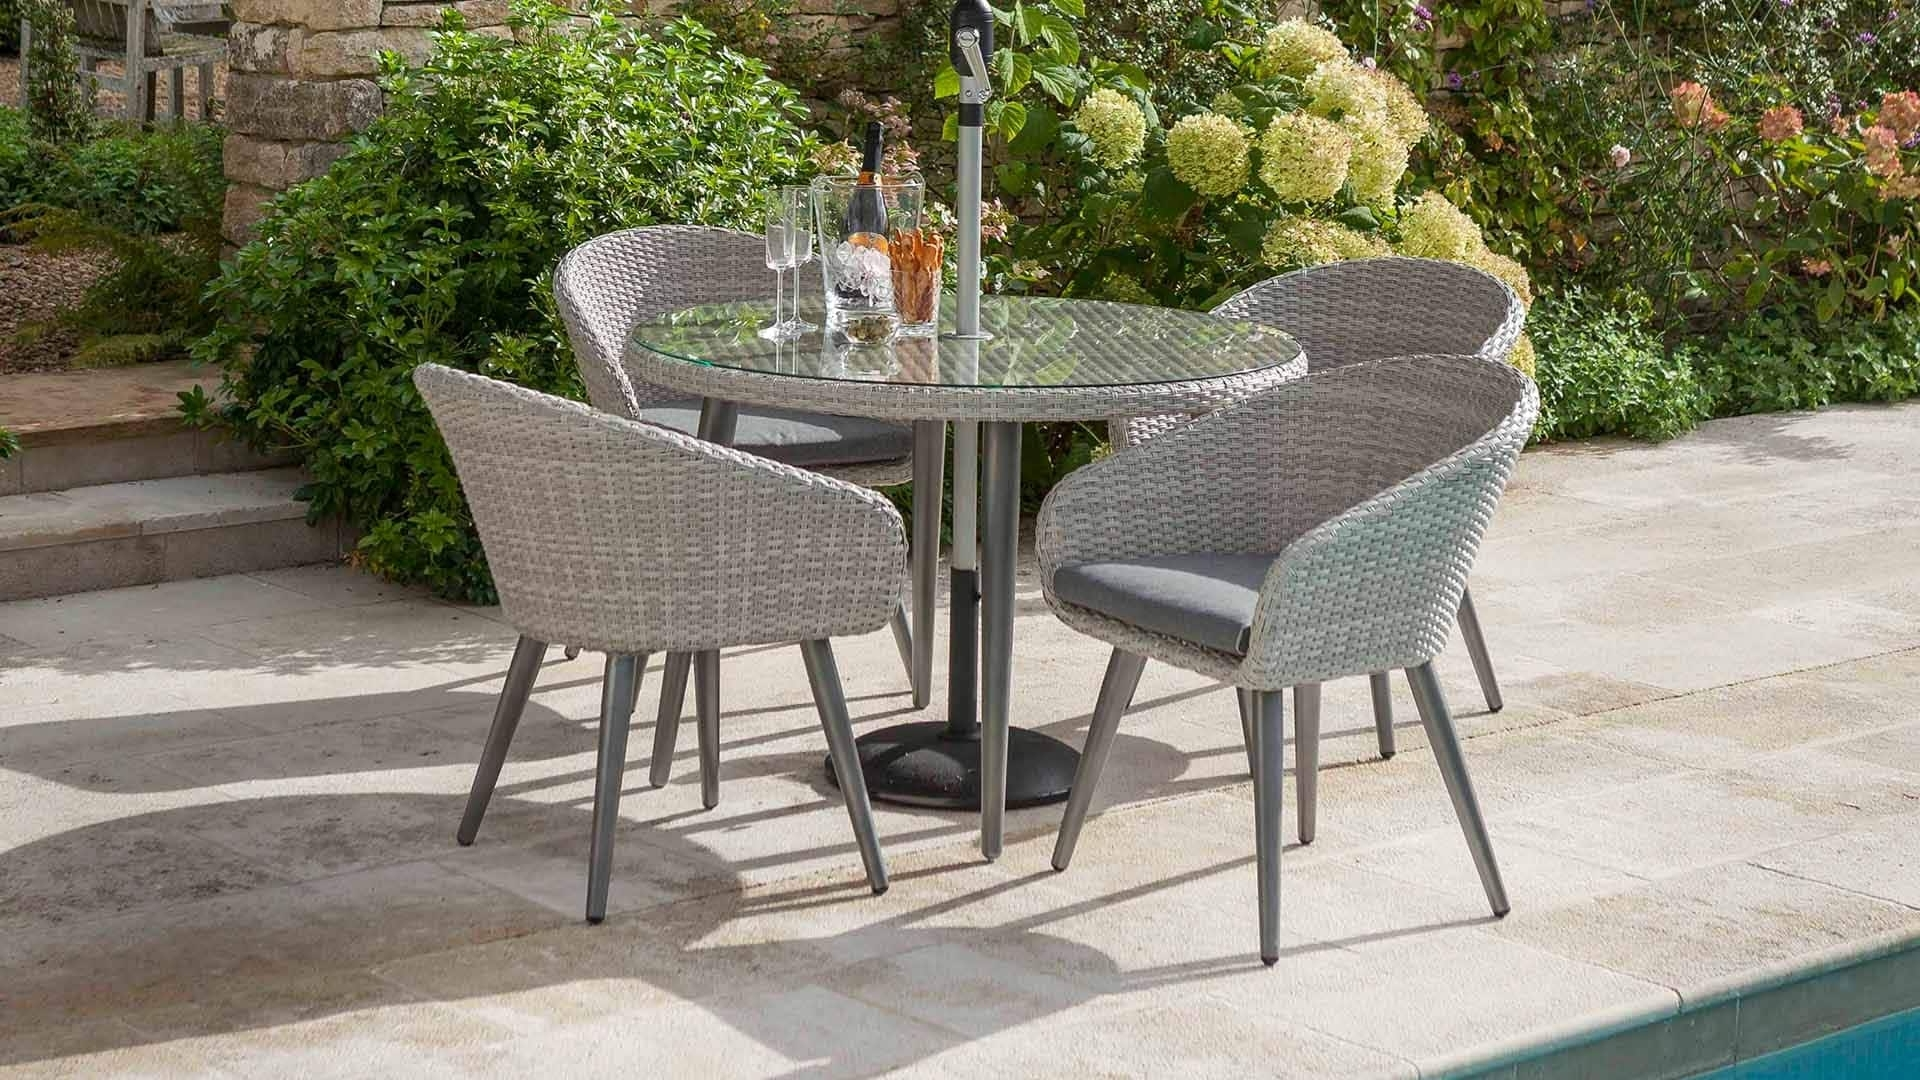 Most Popular Outdoor Sienna Dining Tables In Sienna 4 Seat Round Dining Set Antique White – Sienna – Wicker (View 8 of 25)